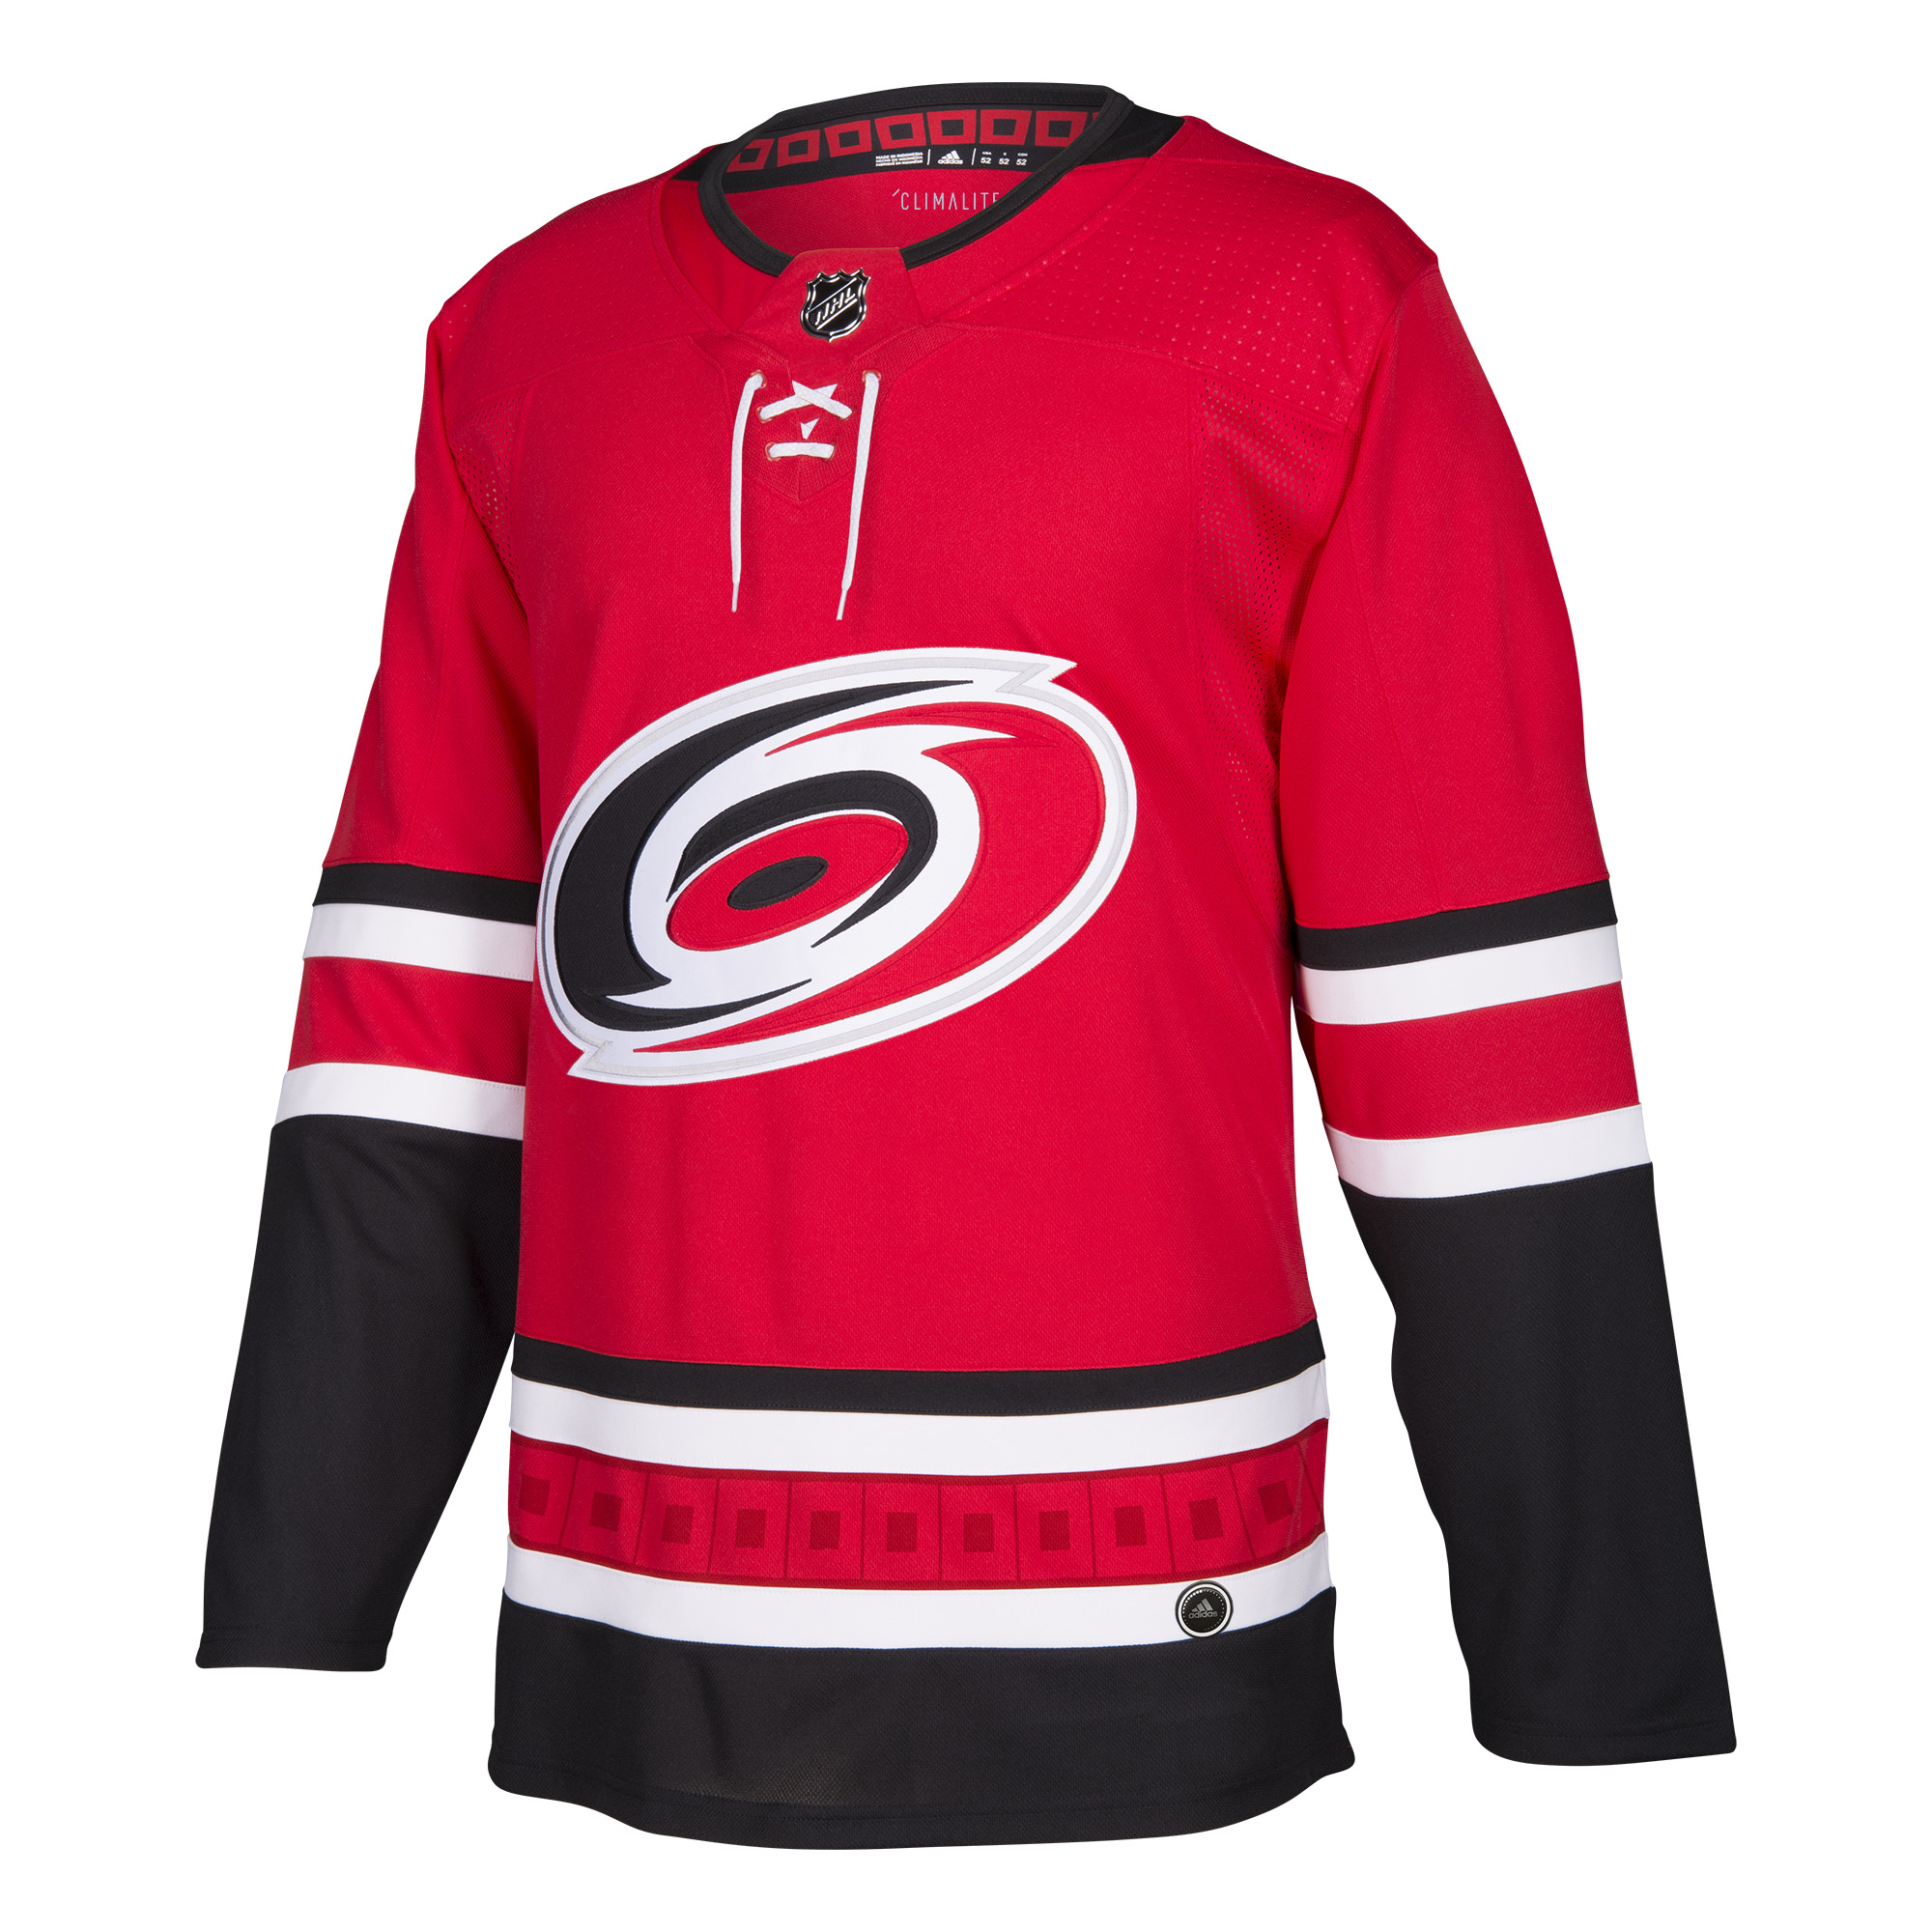 Carolina Hurricanes Adidas NHL Men's Climalite Authentic Team Hockey Jersey